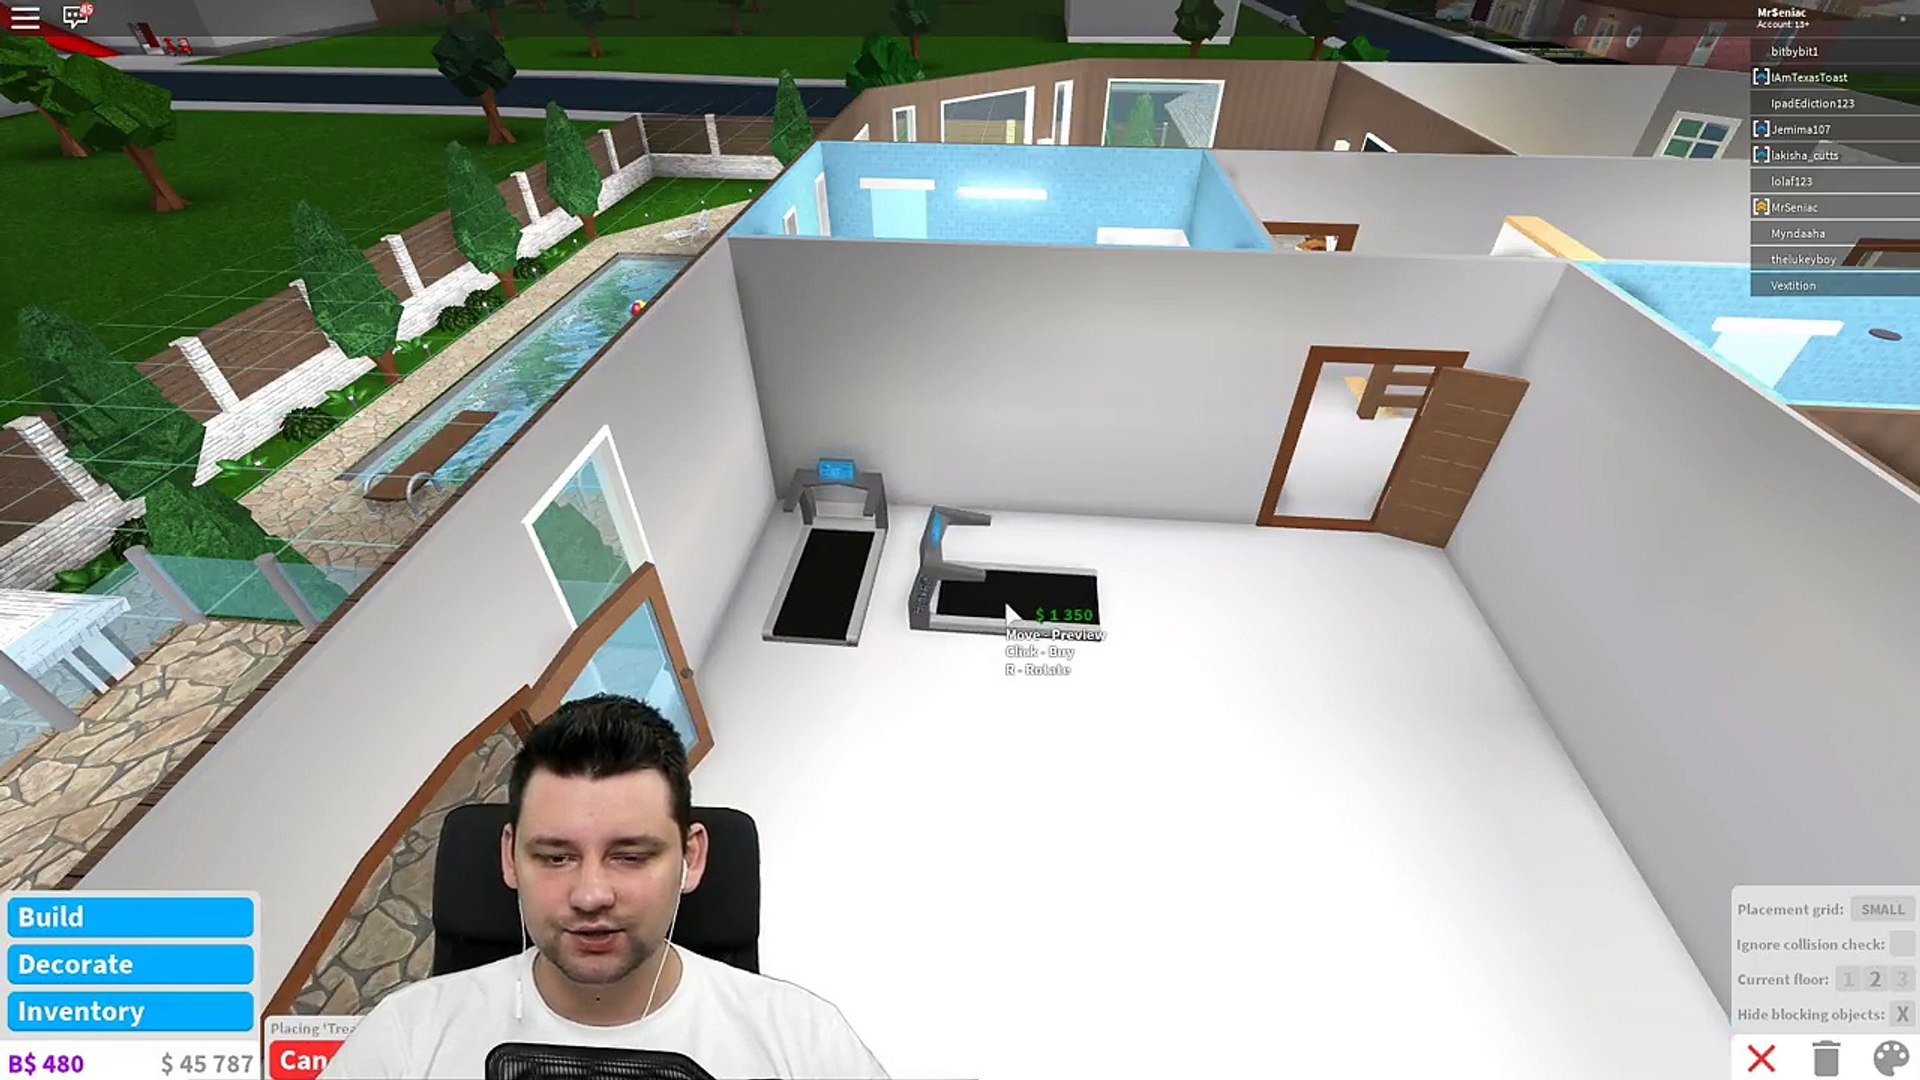 Building A Mini Town Roblox Welcome To Bloxburg 1 - Bloxburg 12 Building A Gym Roblox Welcome To Bloxburg